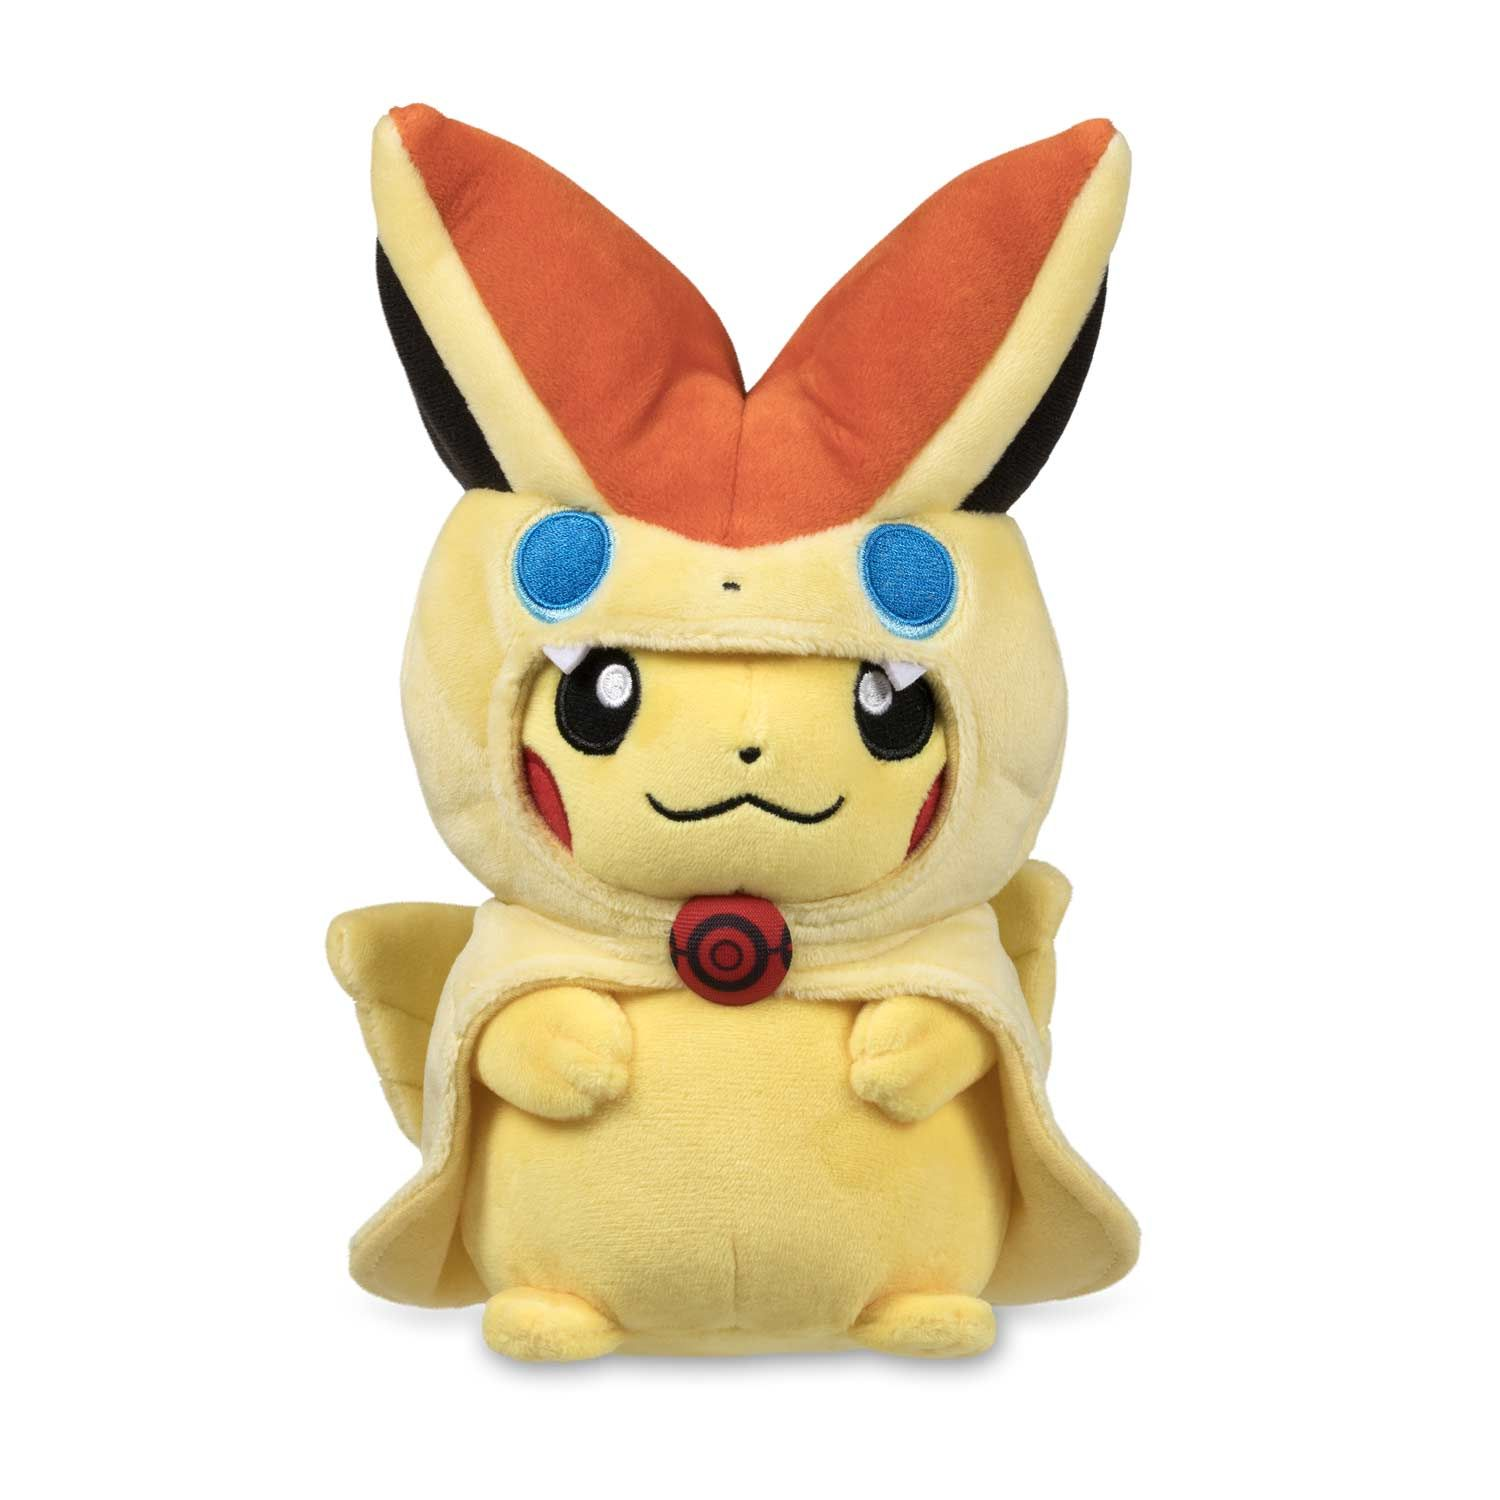 The Official Victini Cape Pikachu Poke Plush Is Ready For A